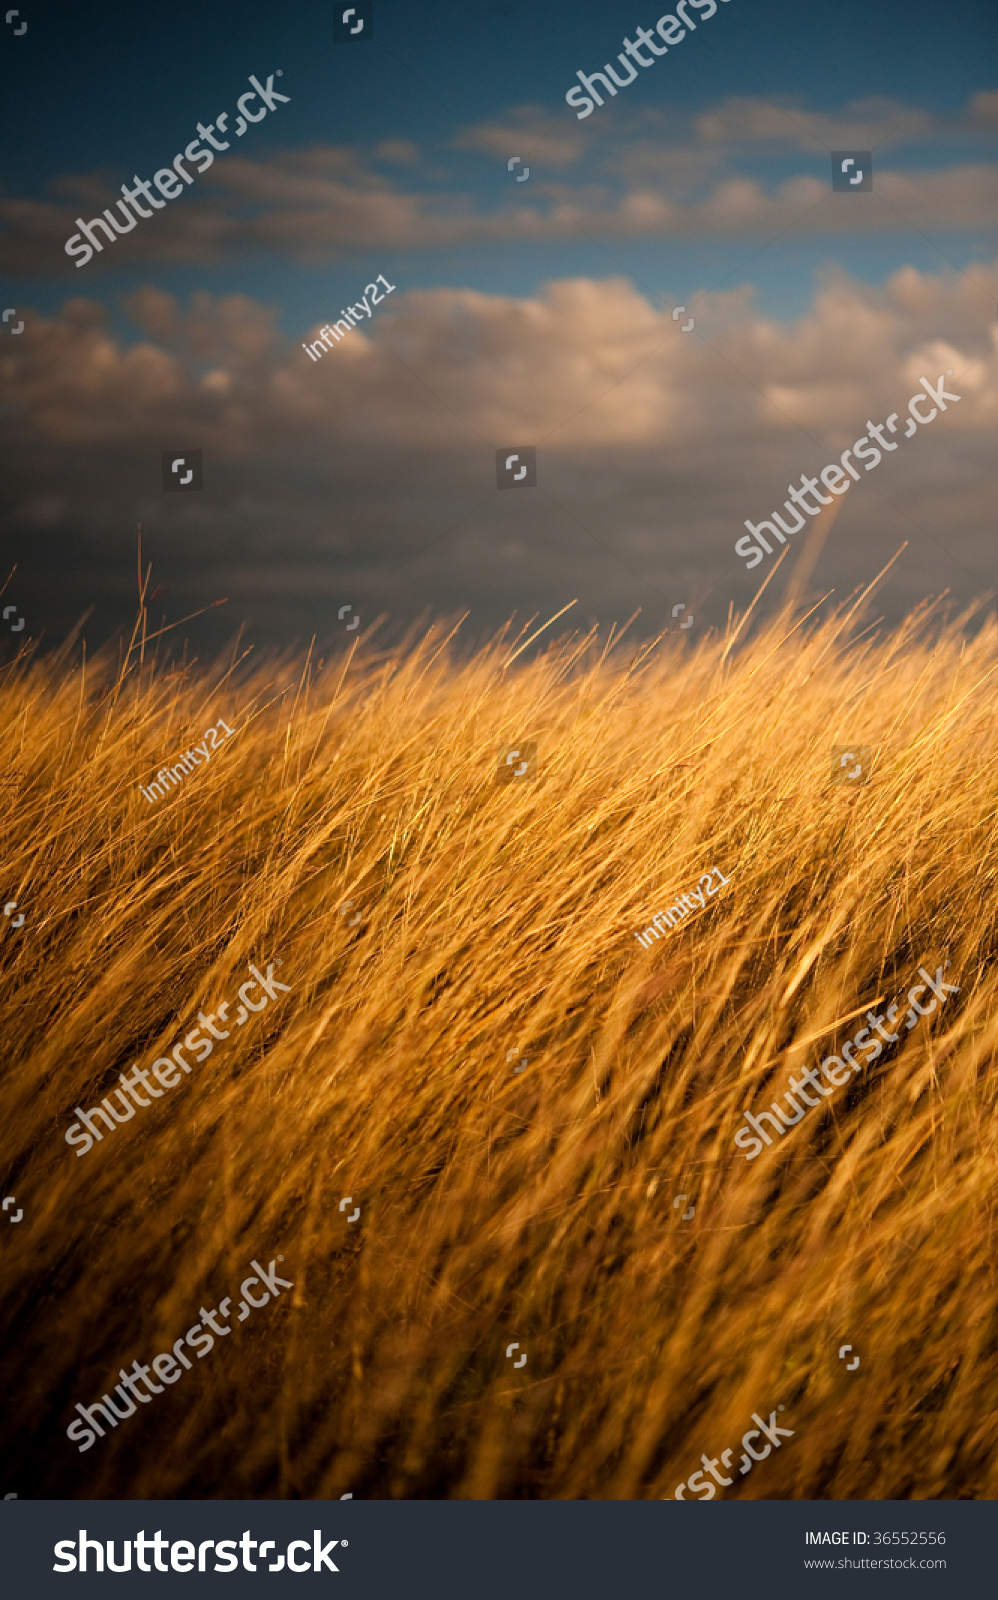 Tall Spikes Of Grass wallpaper